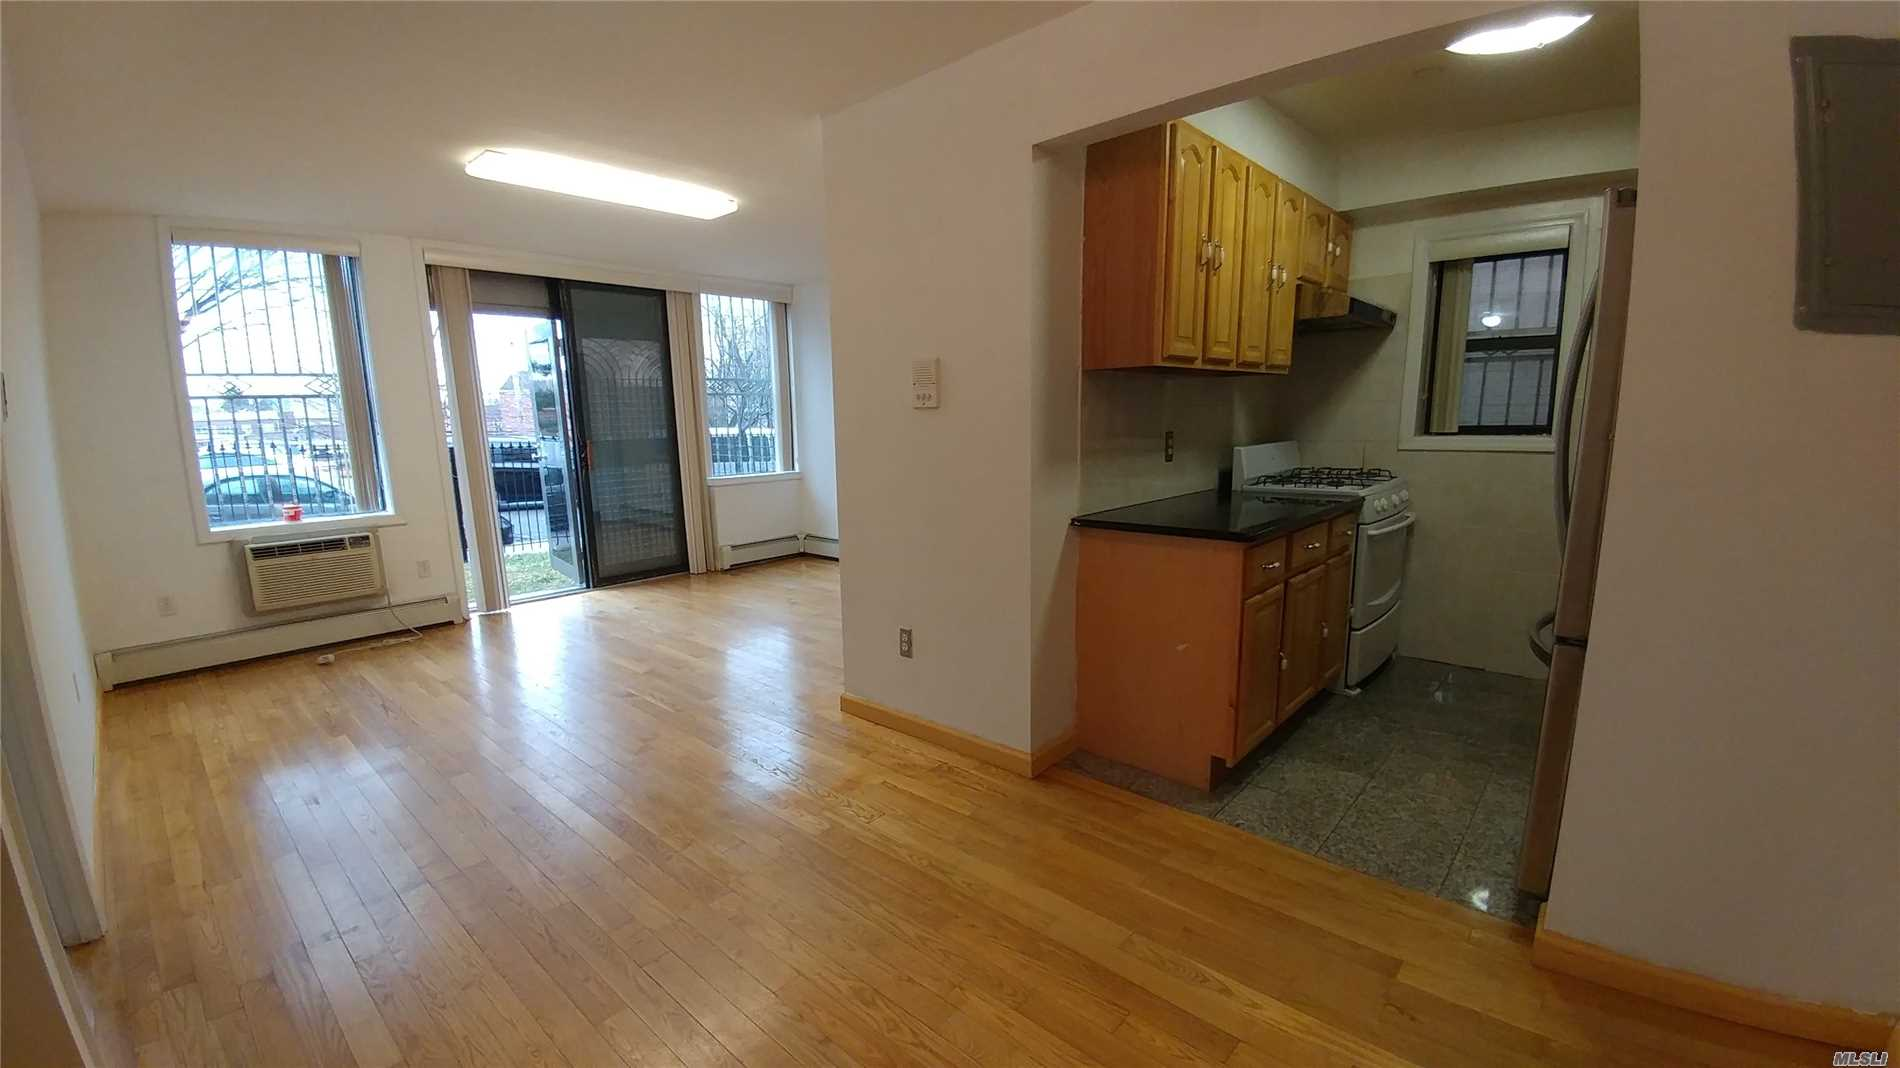 This Is A Wonderful One Bedroom Duplex With Separate Entrance For The Basement With Access To The Elevator And Parking Garage. It Is Bright With An Open Concept.The Property Is Close To Shopping Areas And Public Transportation And Only Minutes To The City. Parking Is Included With The Unit. 14 Years More Tax Abatement. Buyer Must Verify All Information. All Information Are Not Deemed Accurate.